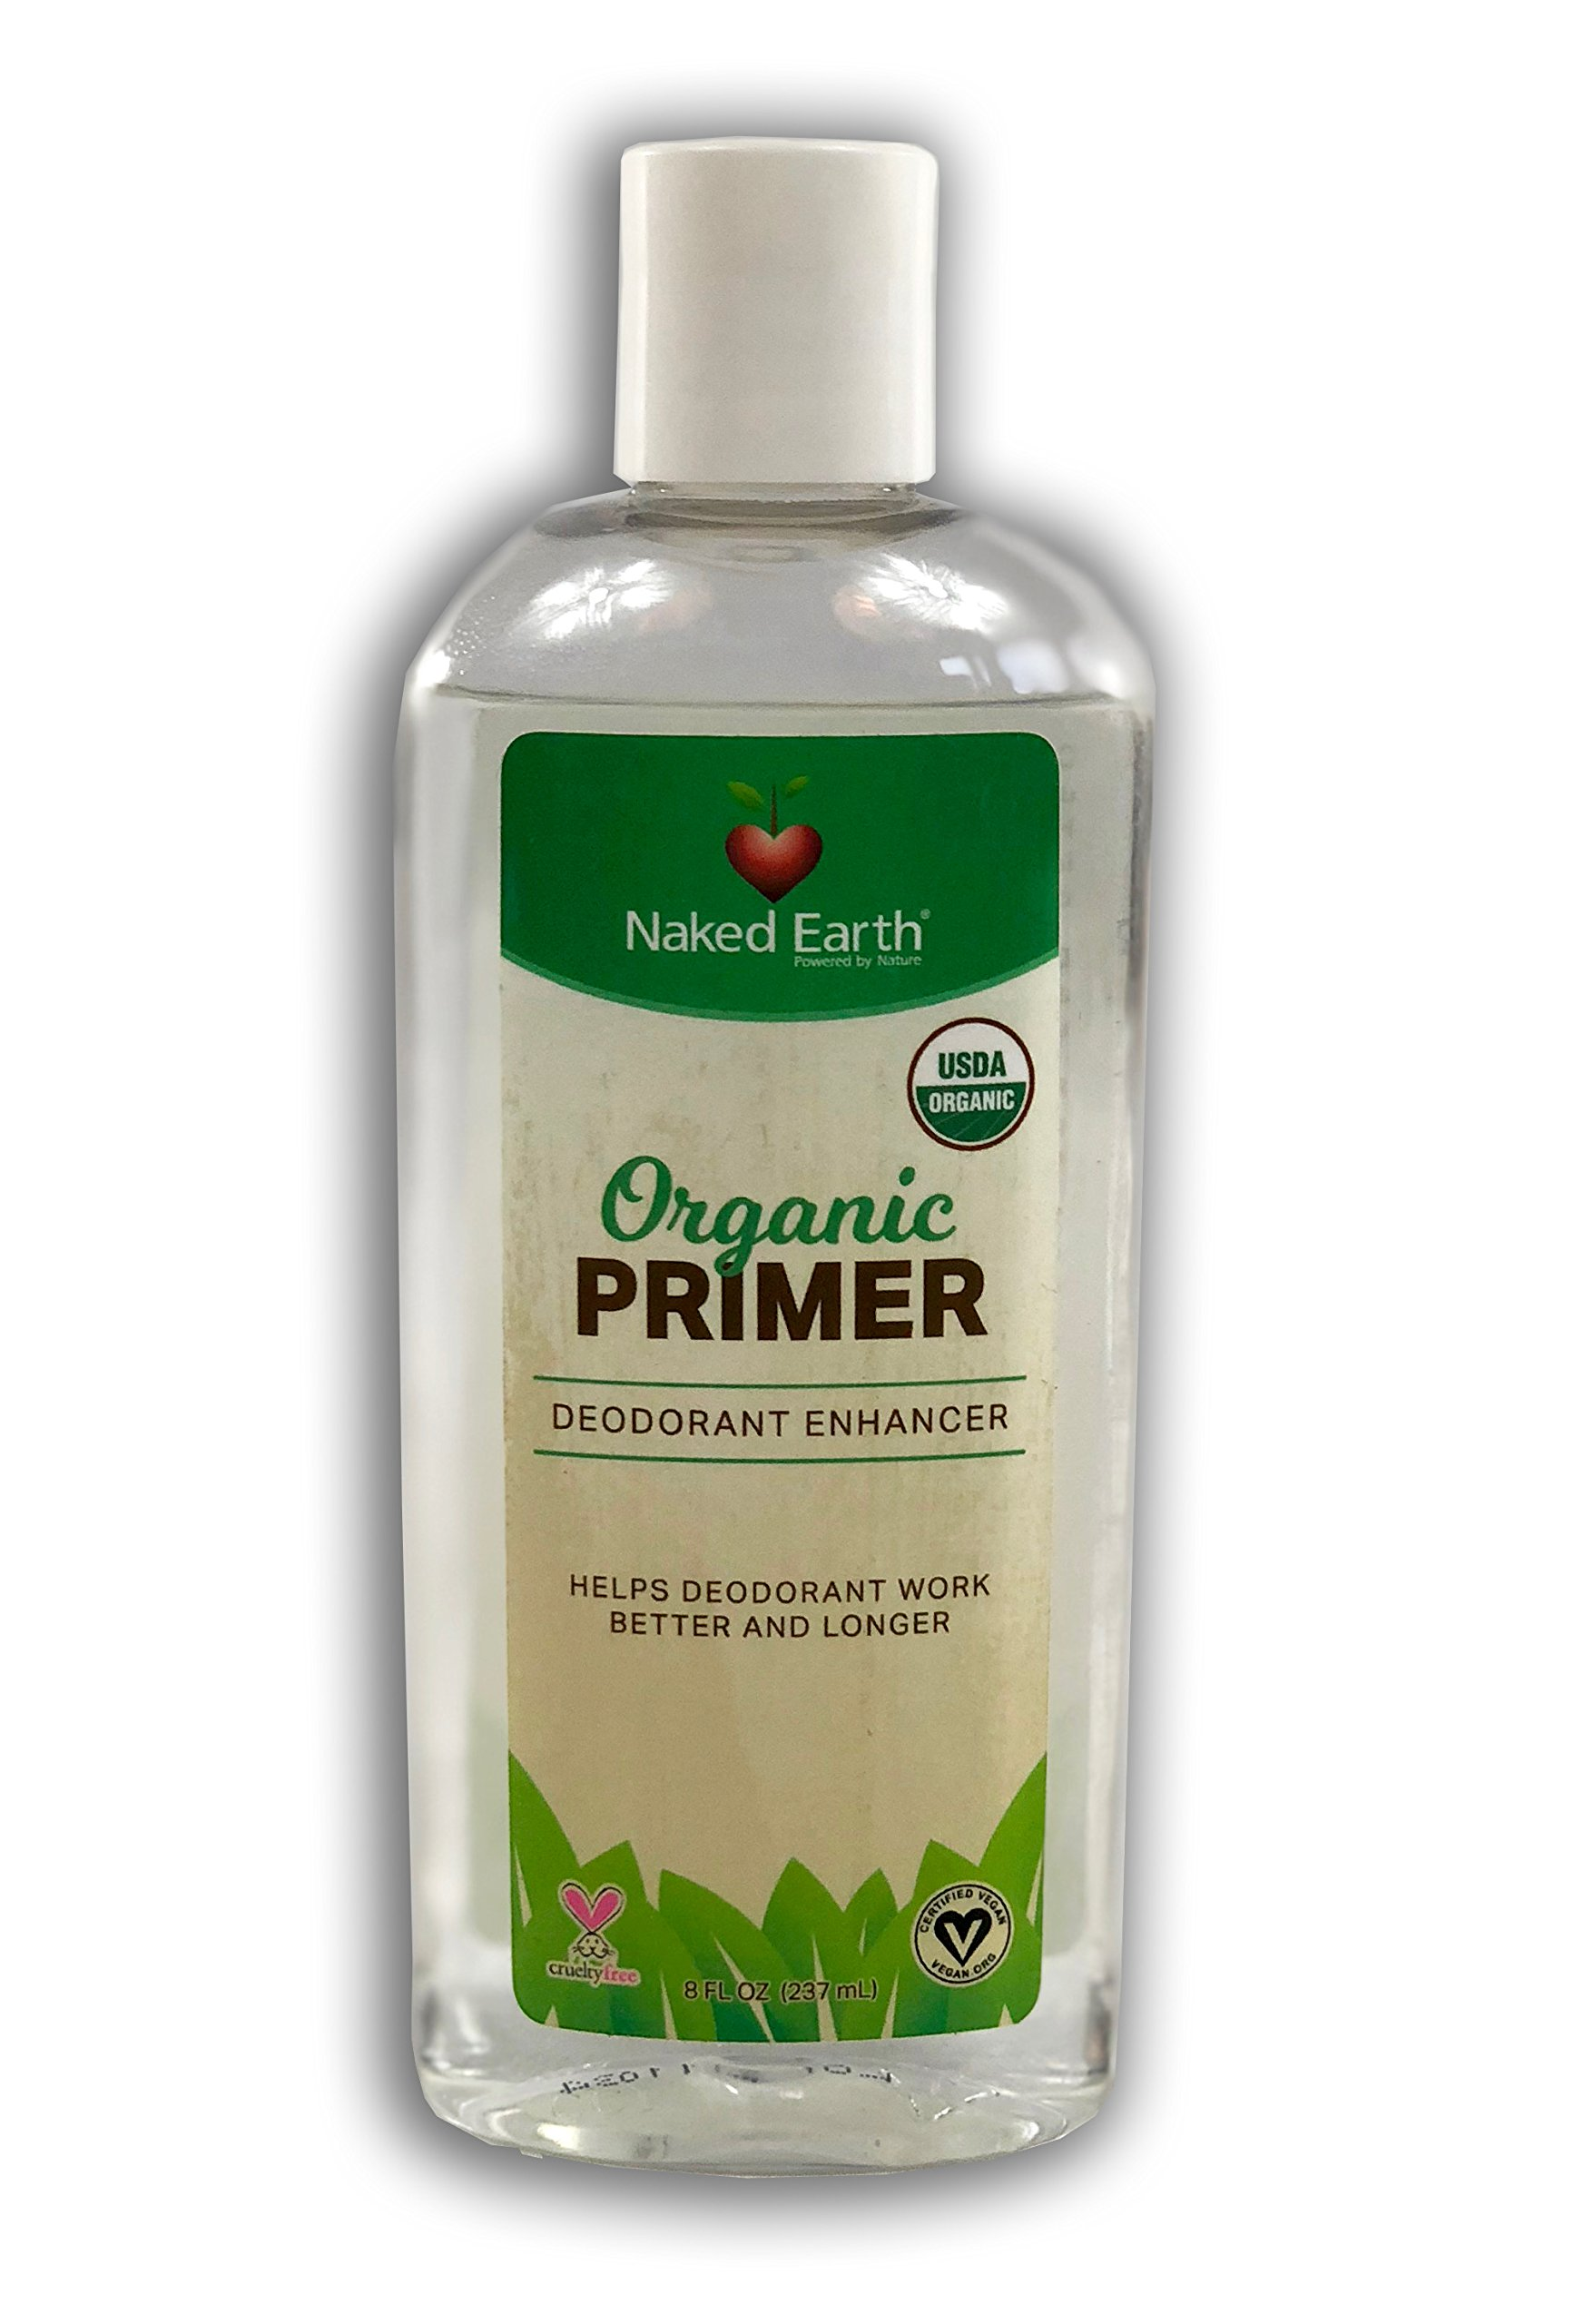 Naked Earth's Organic Deodorant Primer - Enables Deodorant to Work Better and Longer